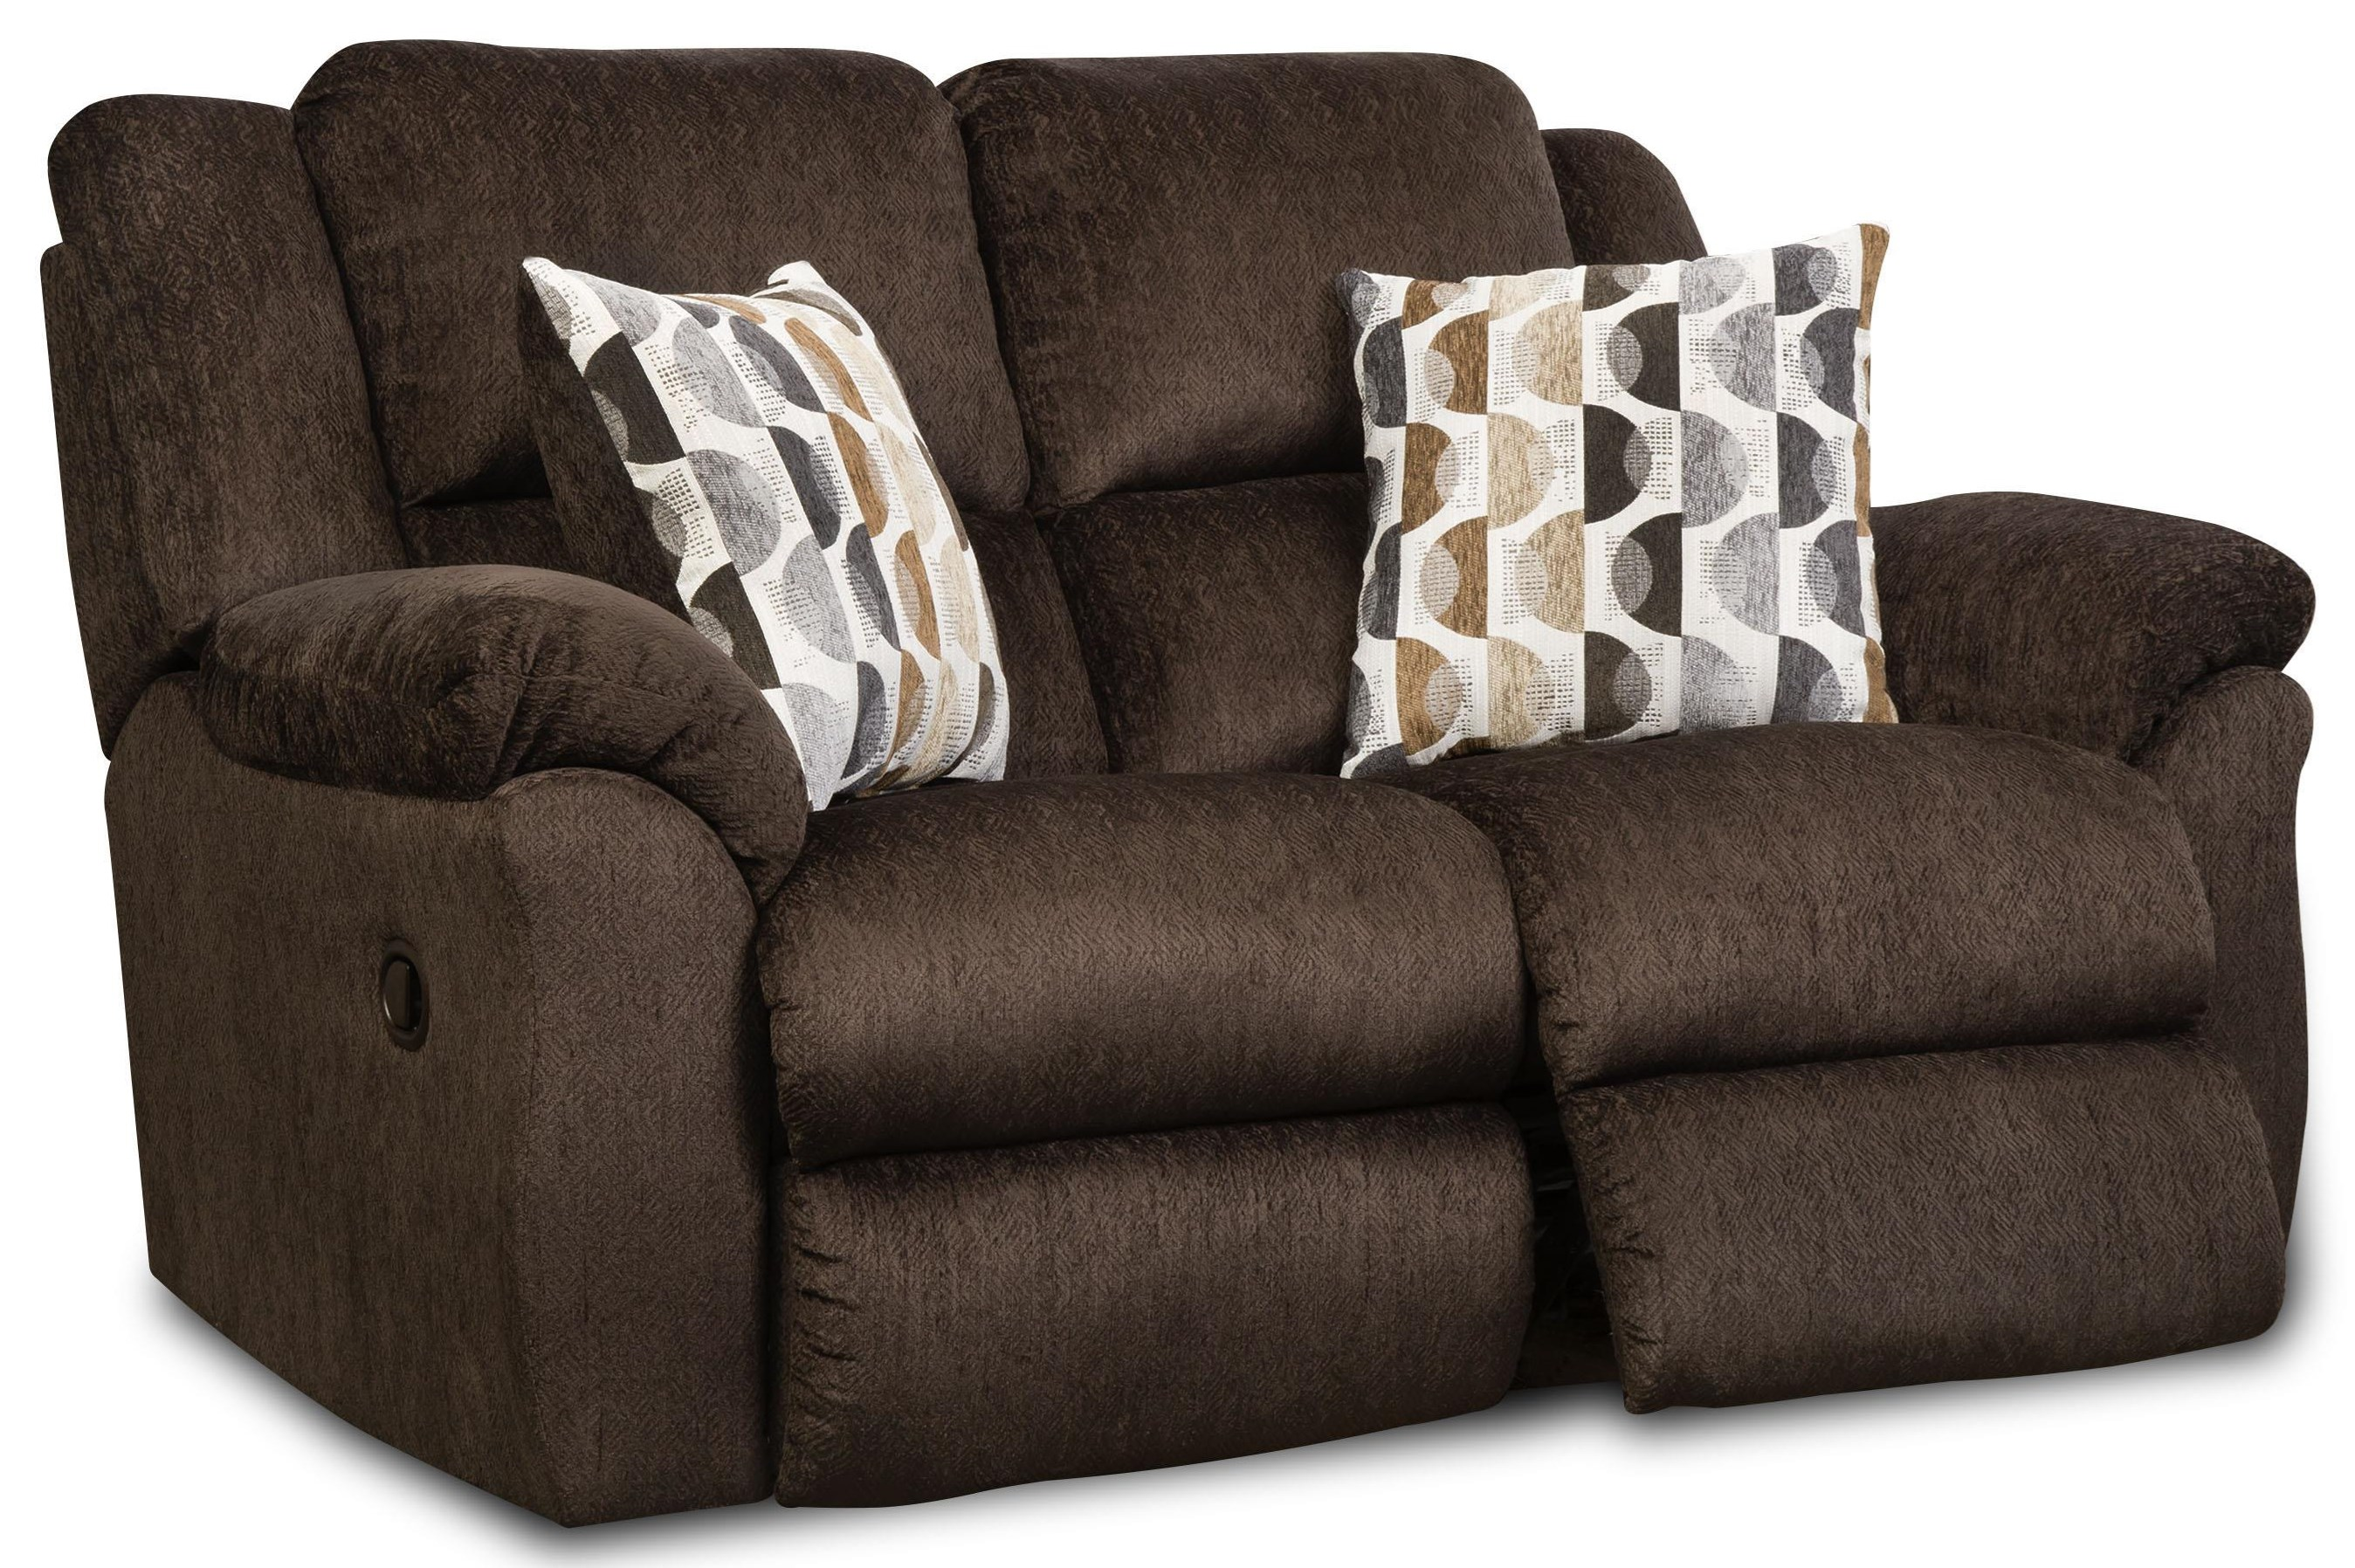 173 Double Reclining Loveseat by HomeStretch at Johnny Janosik